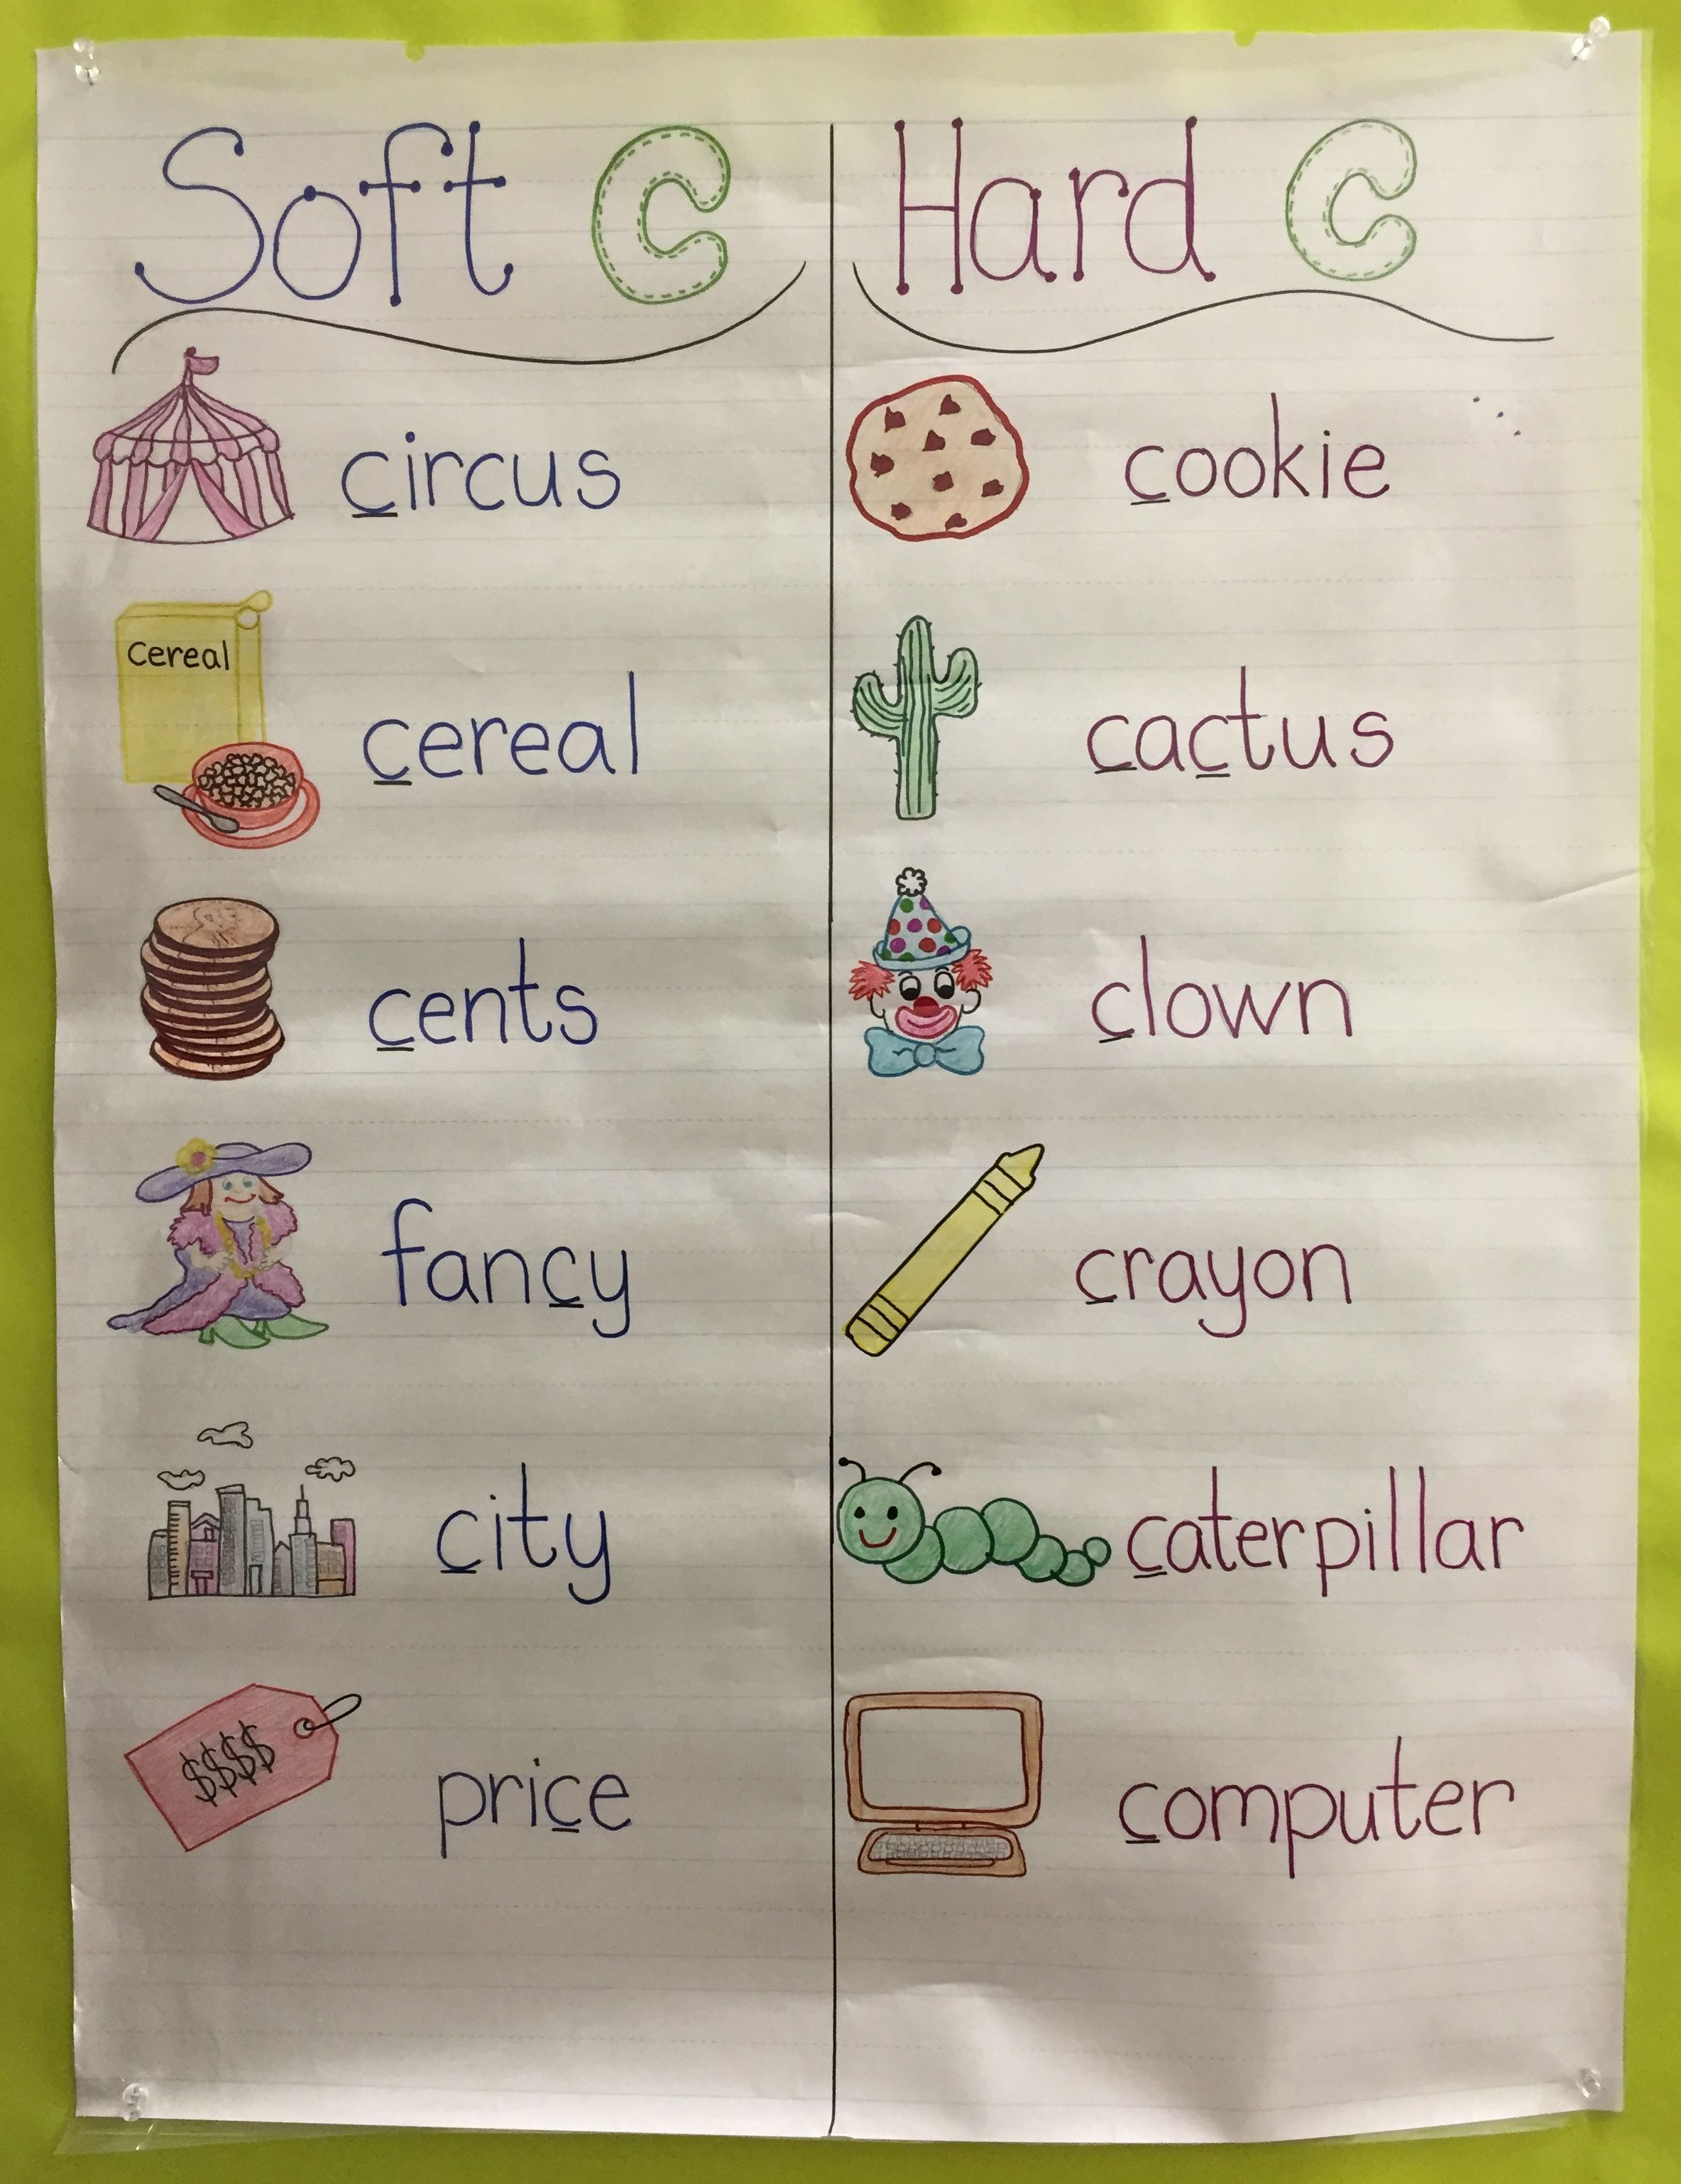 hight resolution of Soft and hard \c\ anchor chart   Anchor charts